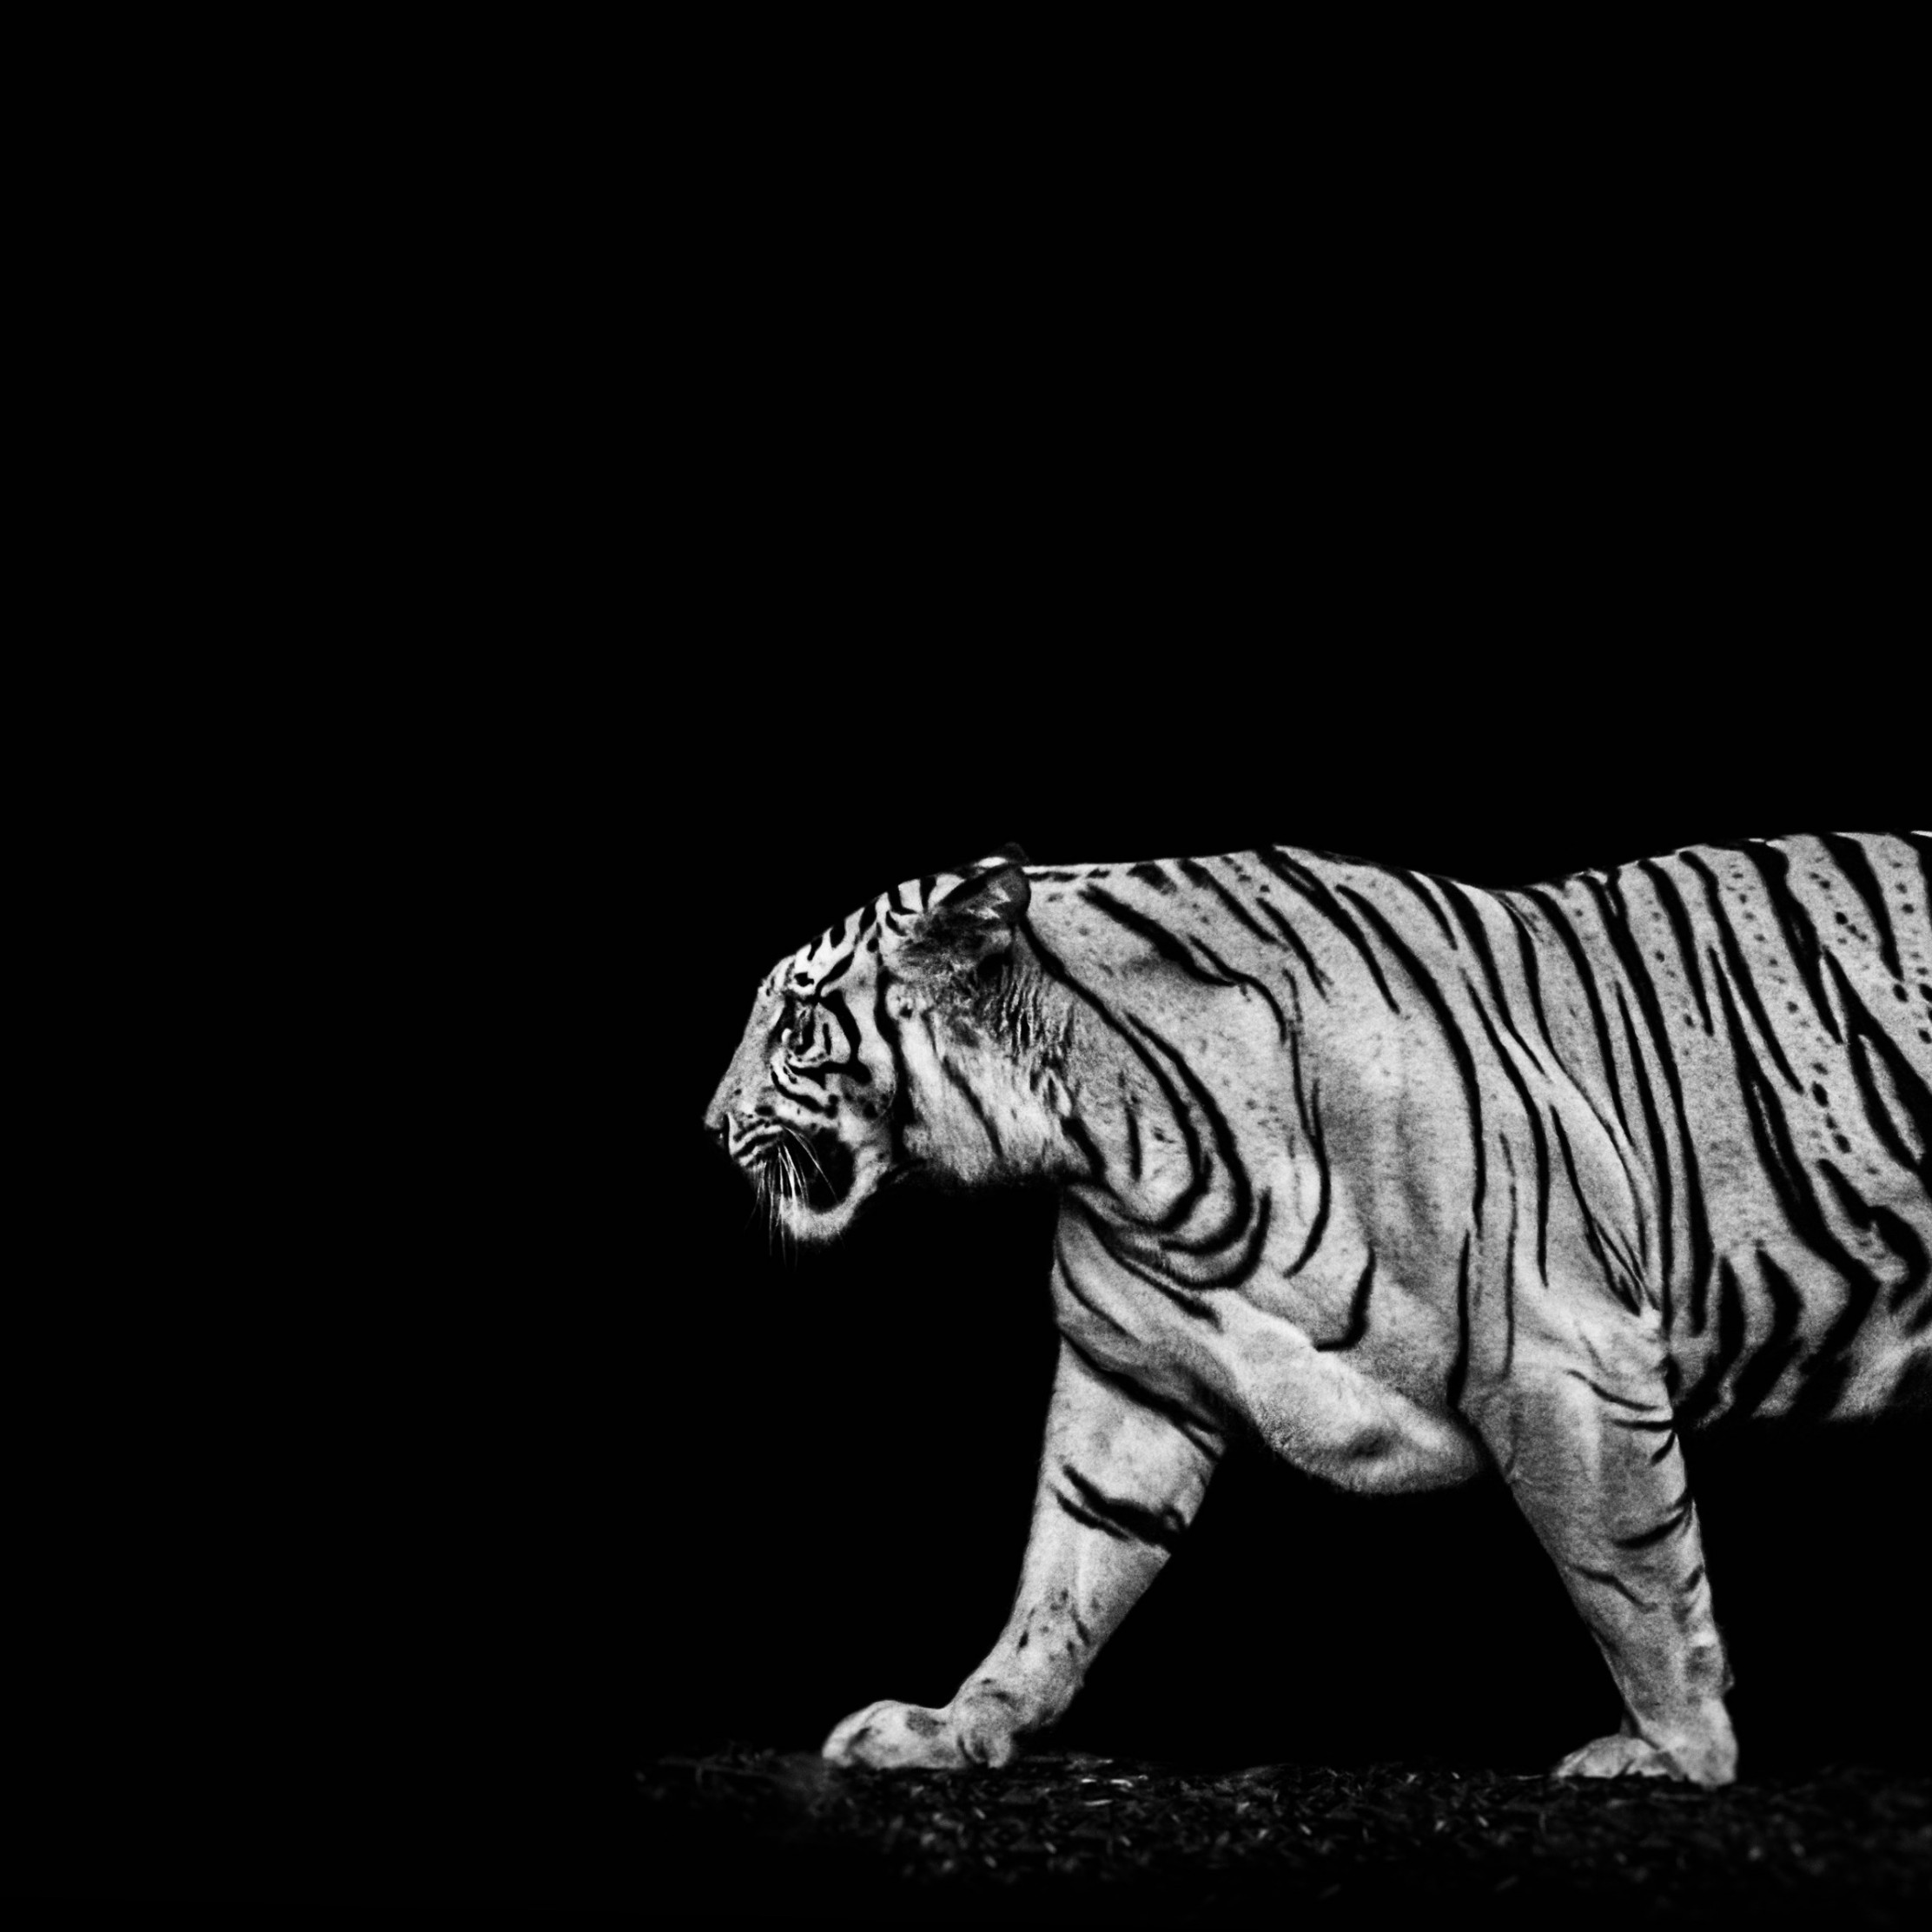 Tiger in the darkness wallpaper 2224x2224